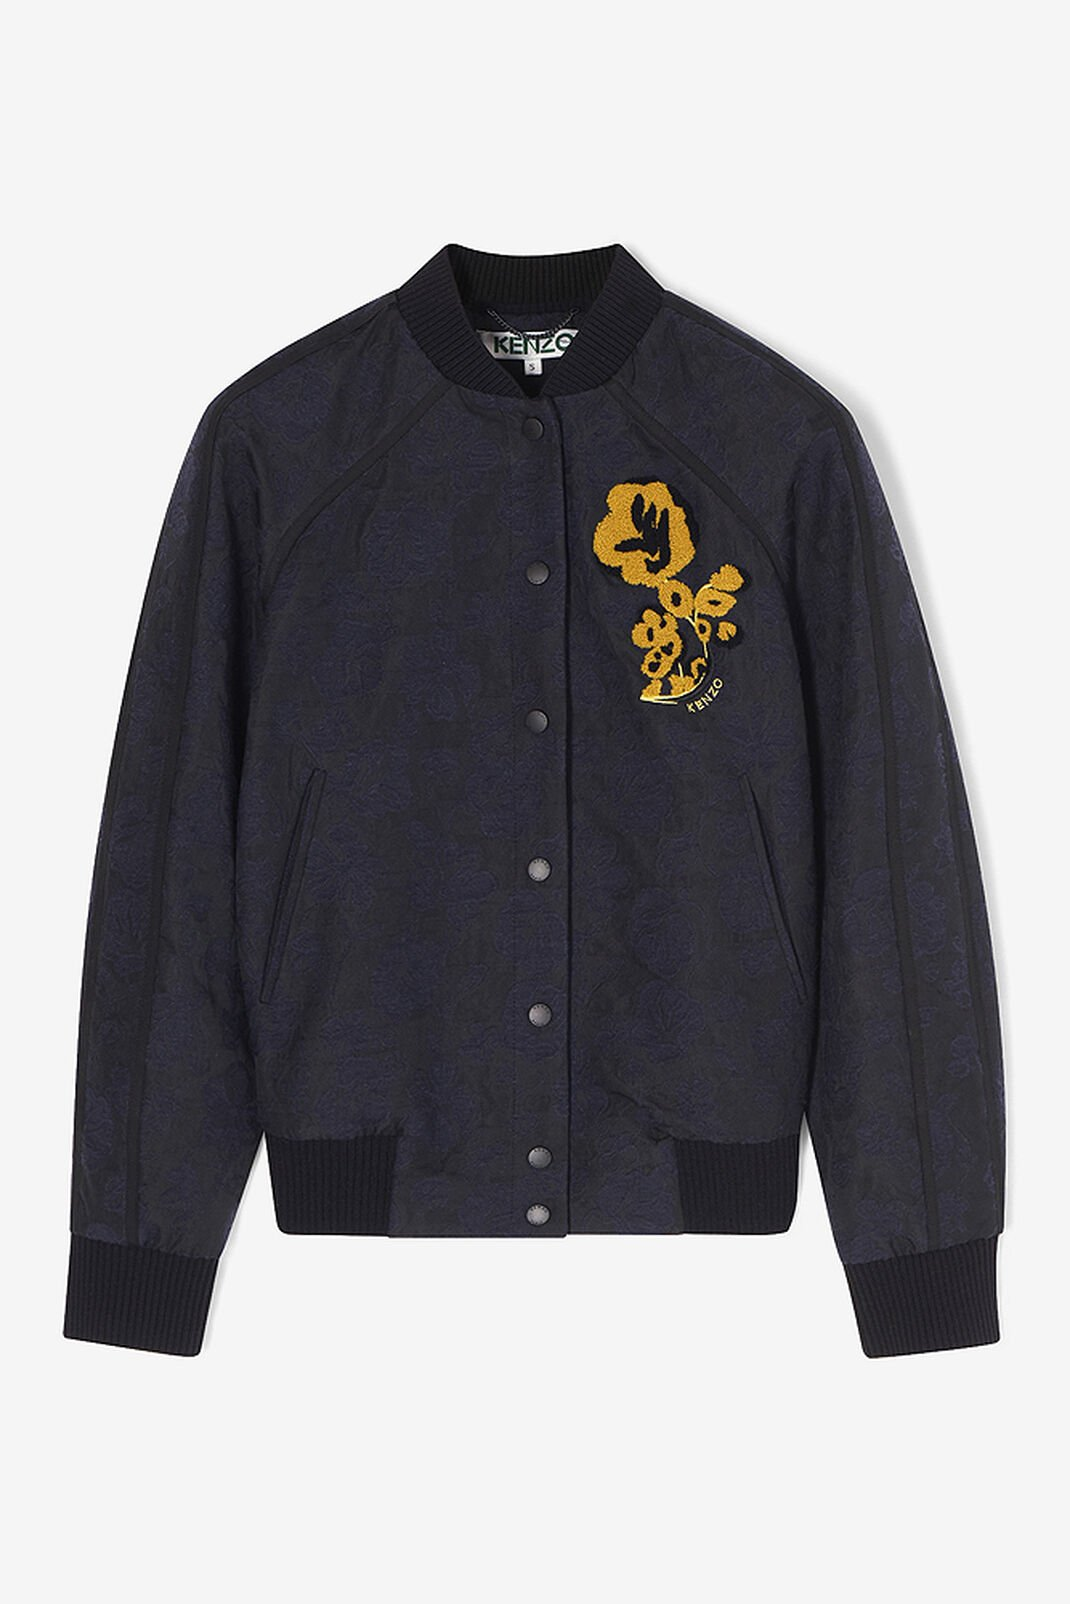 NAVY BLUE 'Floral Leaf' Letter Jacket for women KENZO